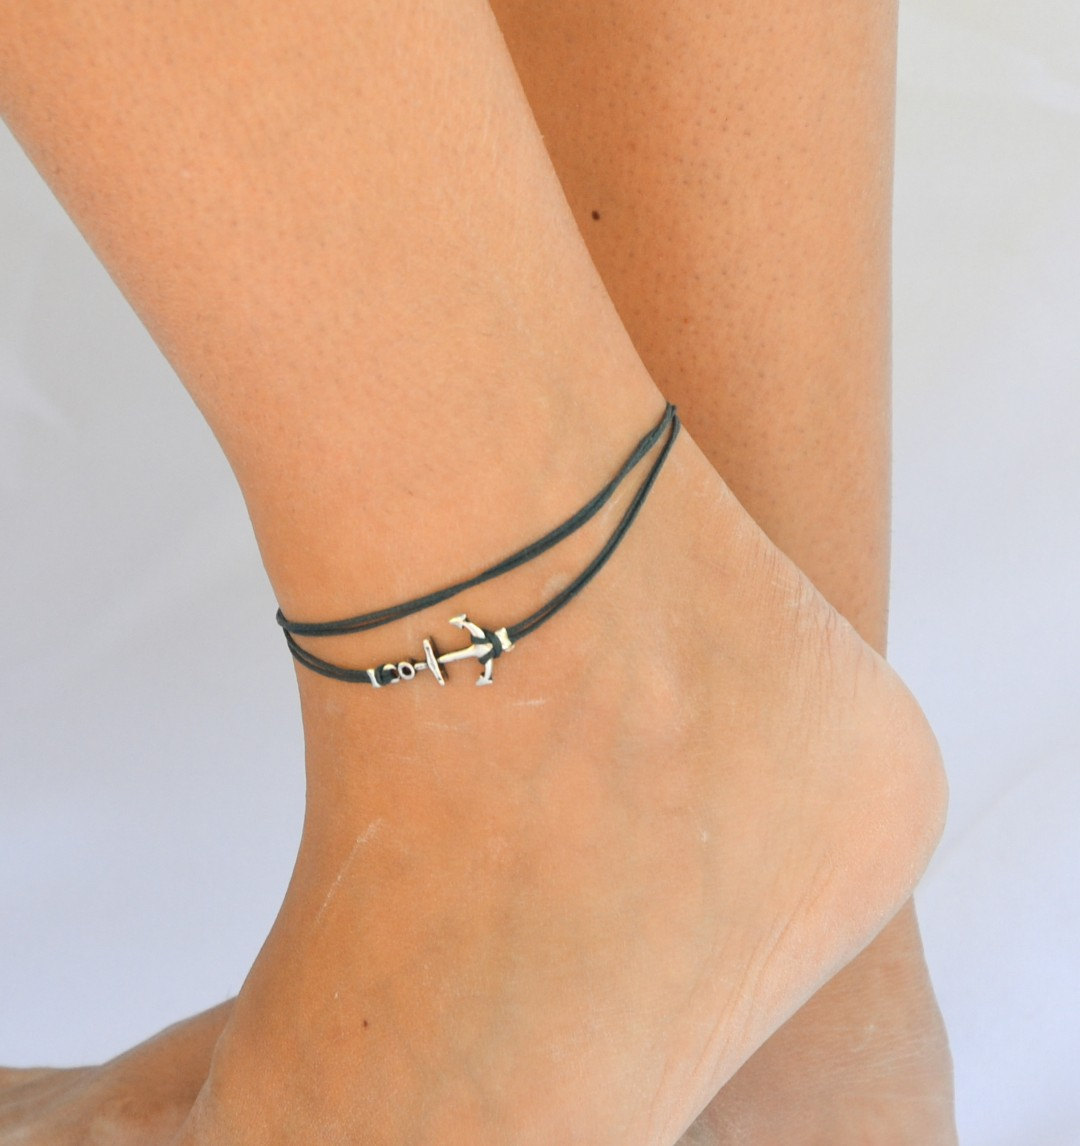 bracelet love on anklet chain color u ankle new cool fashion bracelets with leg summer tube gold look lust products simple jewelry